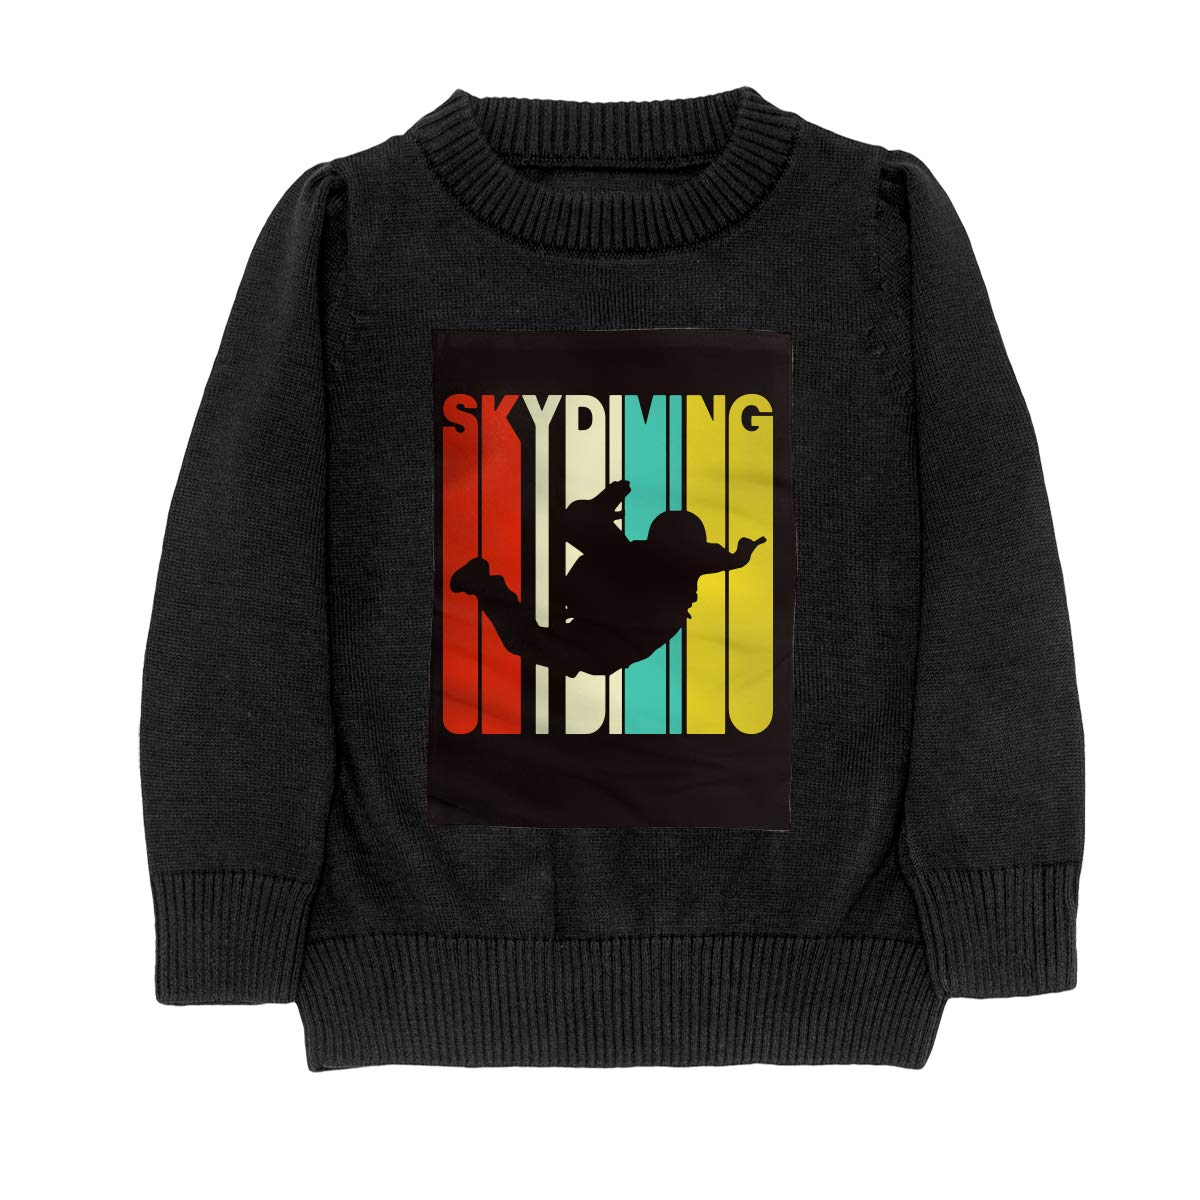 Vintage Style Skydiving Silhouette Fashion Adolescent Boys /& Girls Unisex Sweater Keep Warm